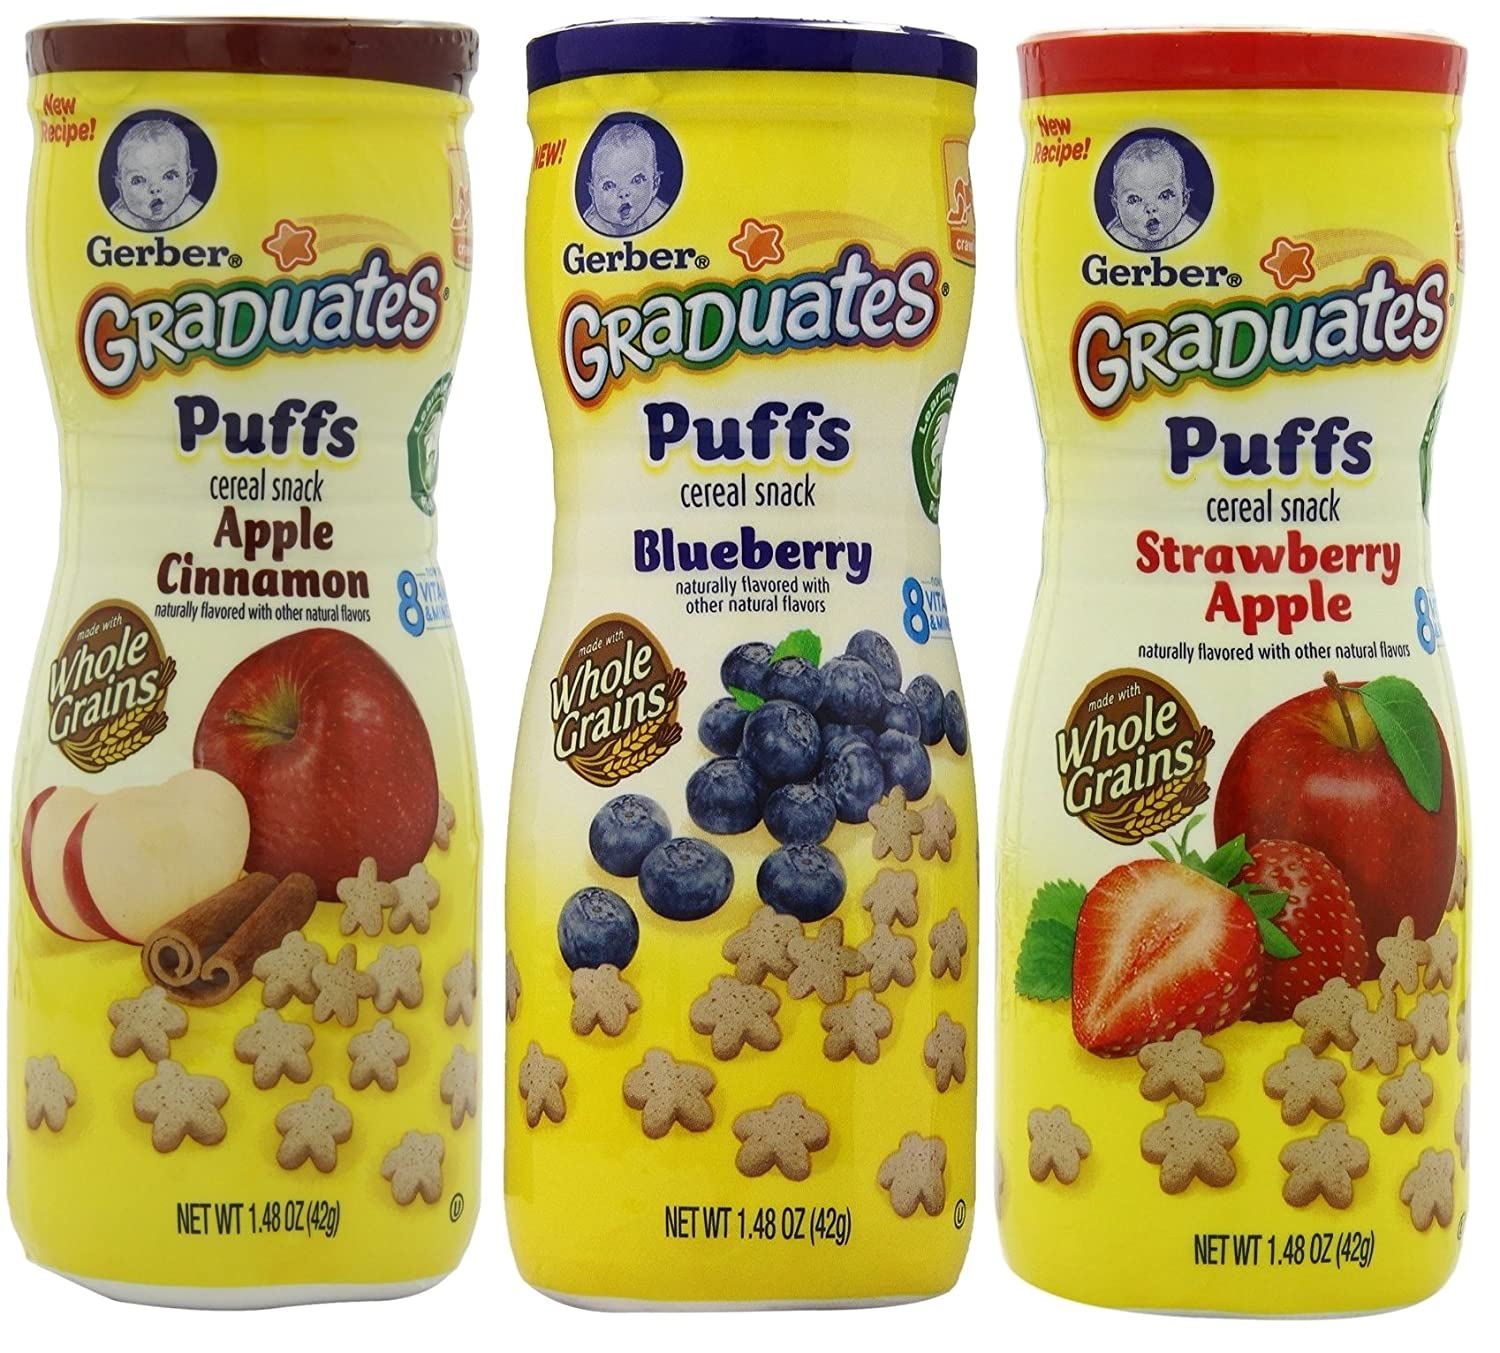 Gerber Graduates Puffs Cereal Snack Variety Pack - Blueberry, Strawberry-Appl...